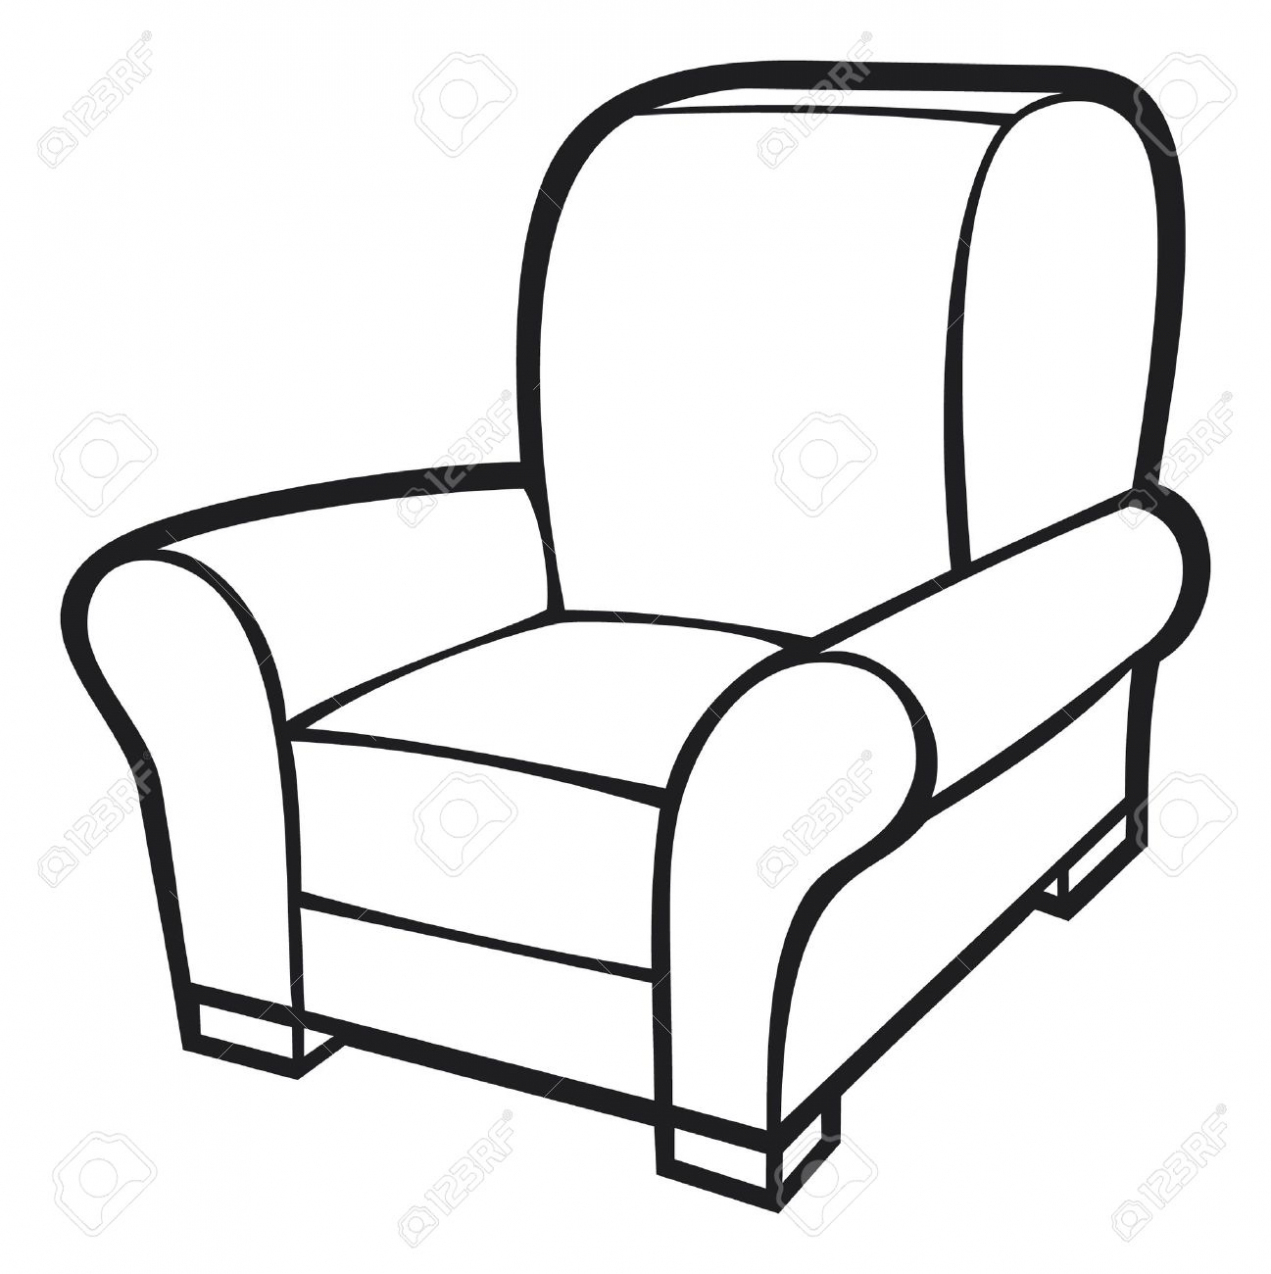 1271x1274 Furniture Armchair Drawing. Armchair. Drawing.